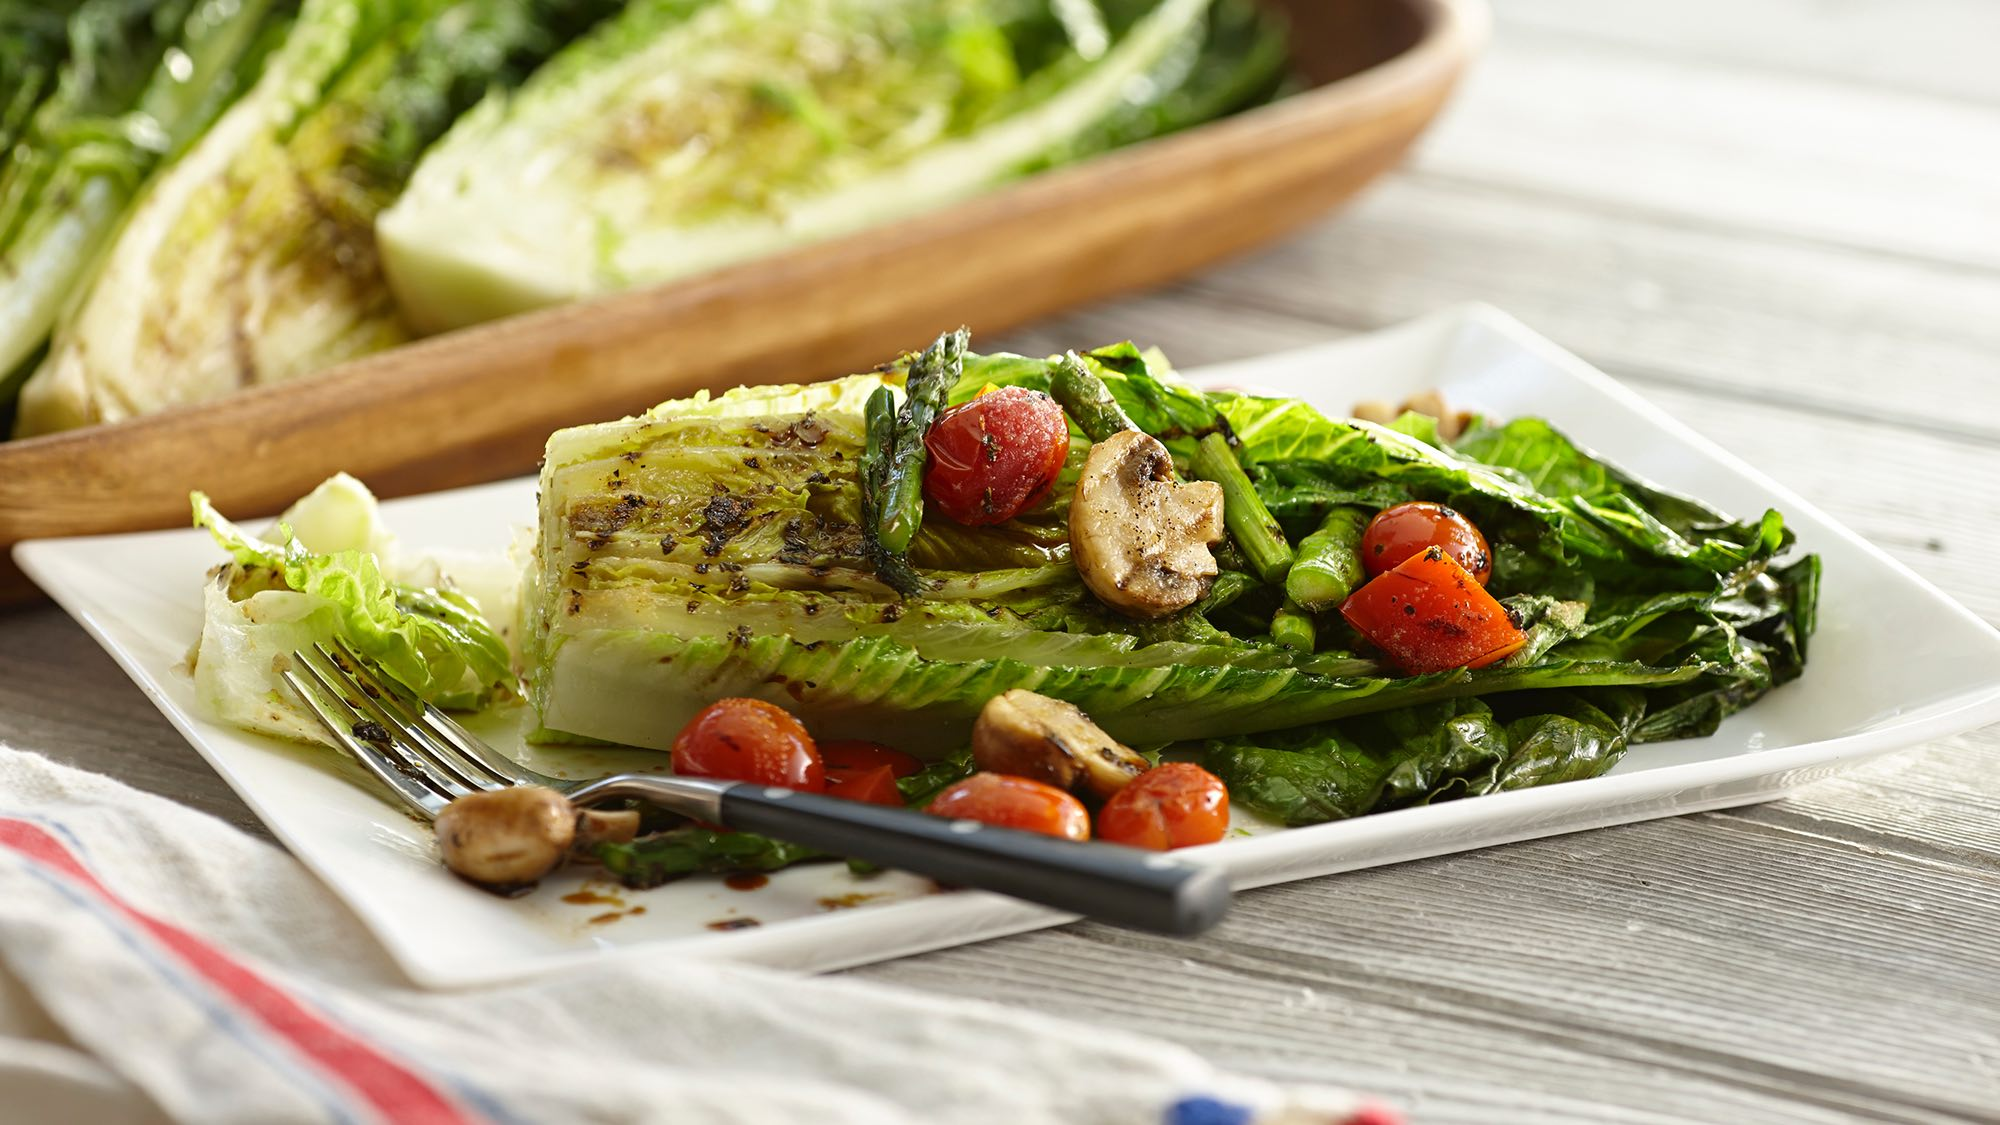 grilled-romaine-and-vegetable-salad-with-balsamic-herb-vinaigrette.jpg